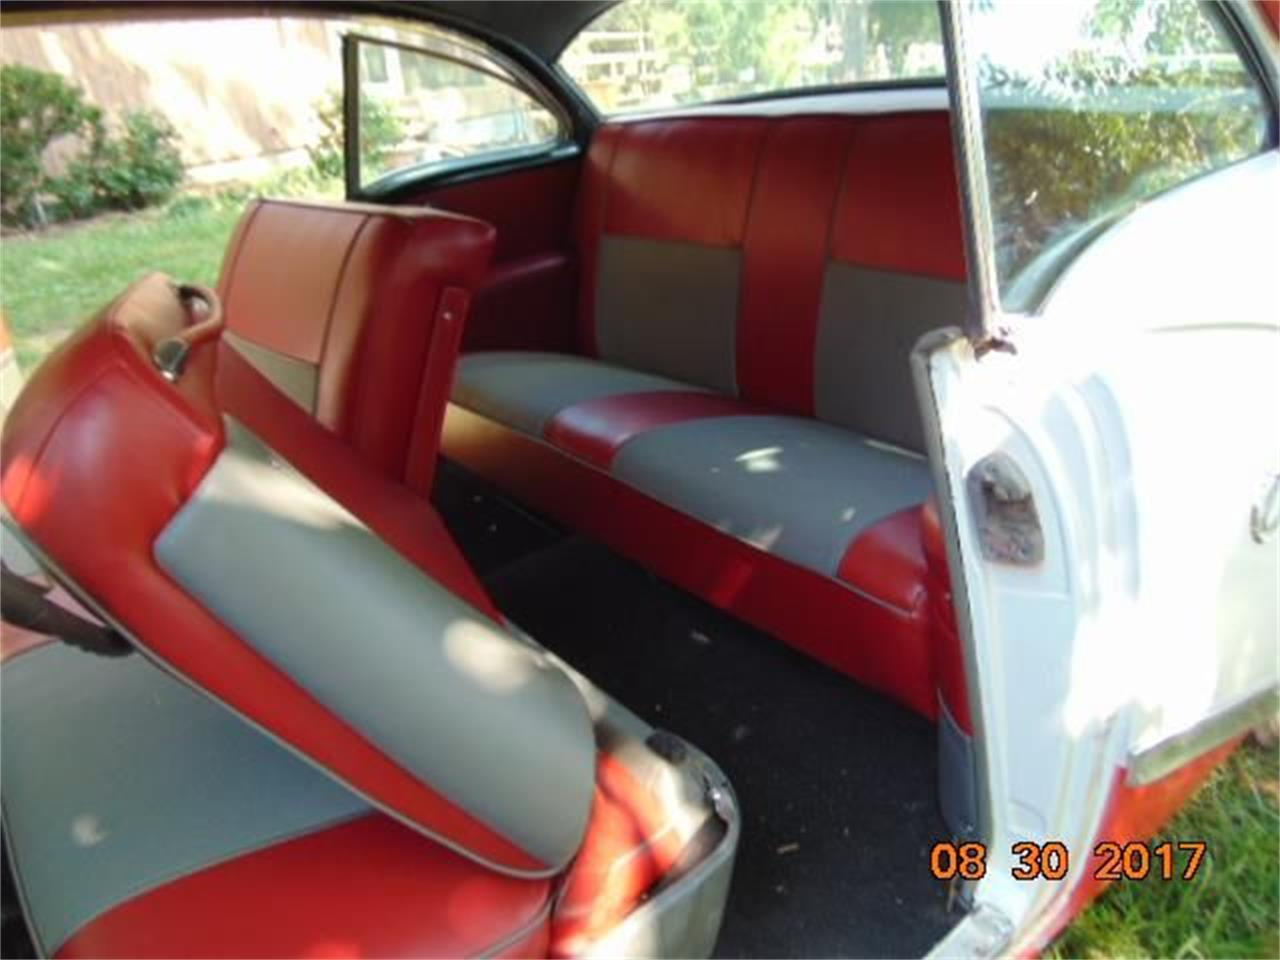 1955 Buick Century for sale in Cadillac, MI – photo 16